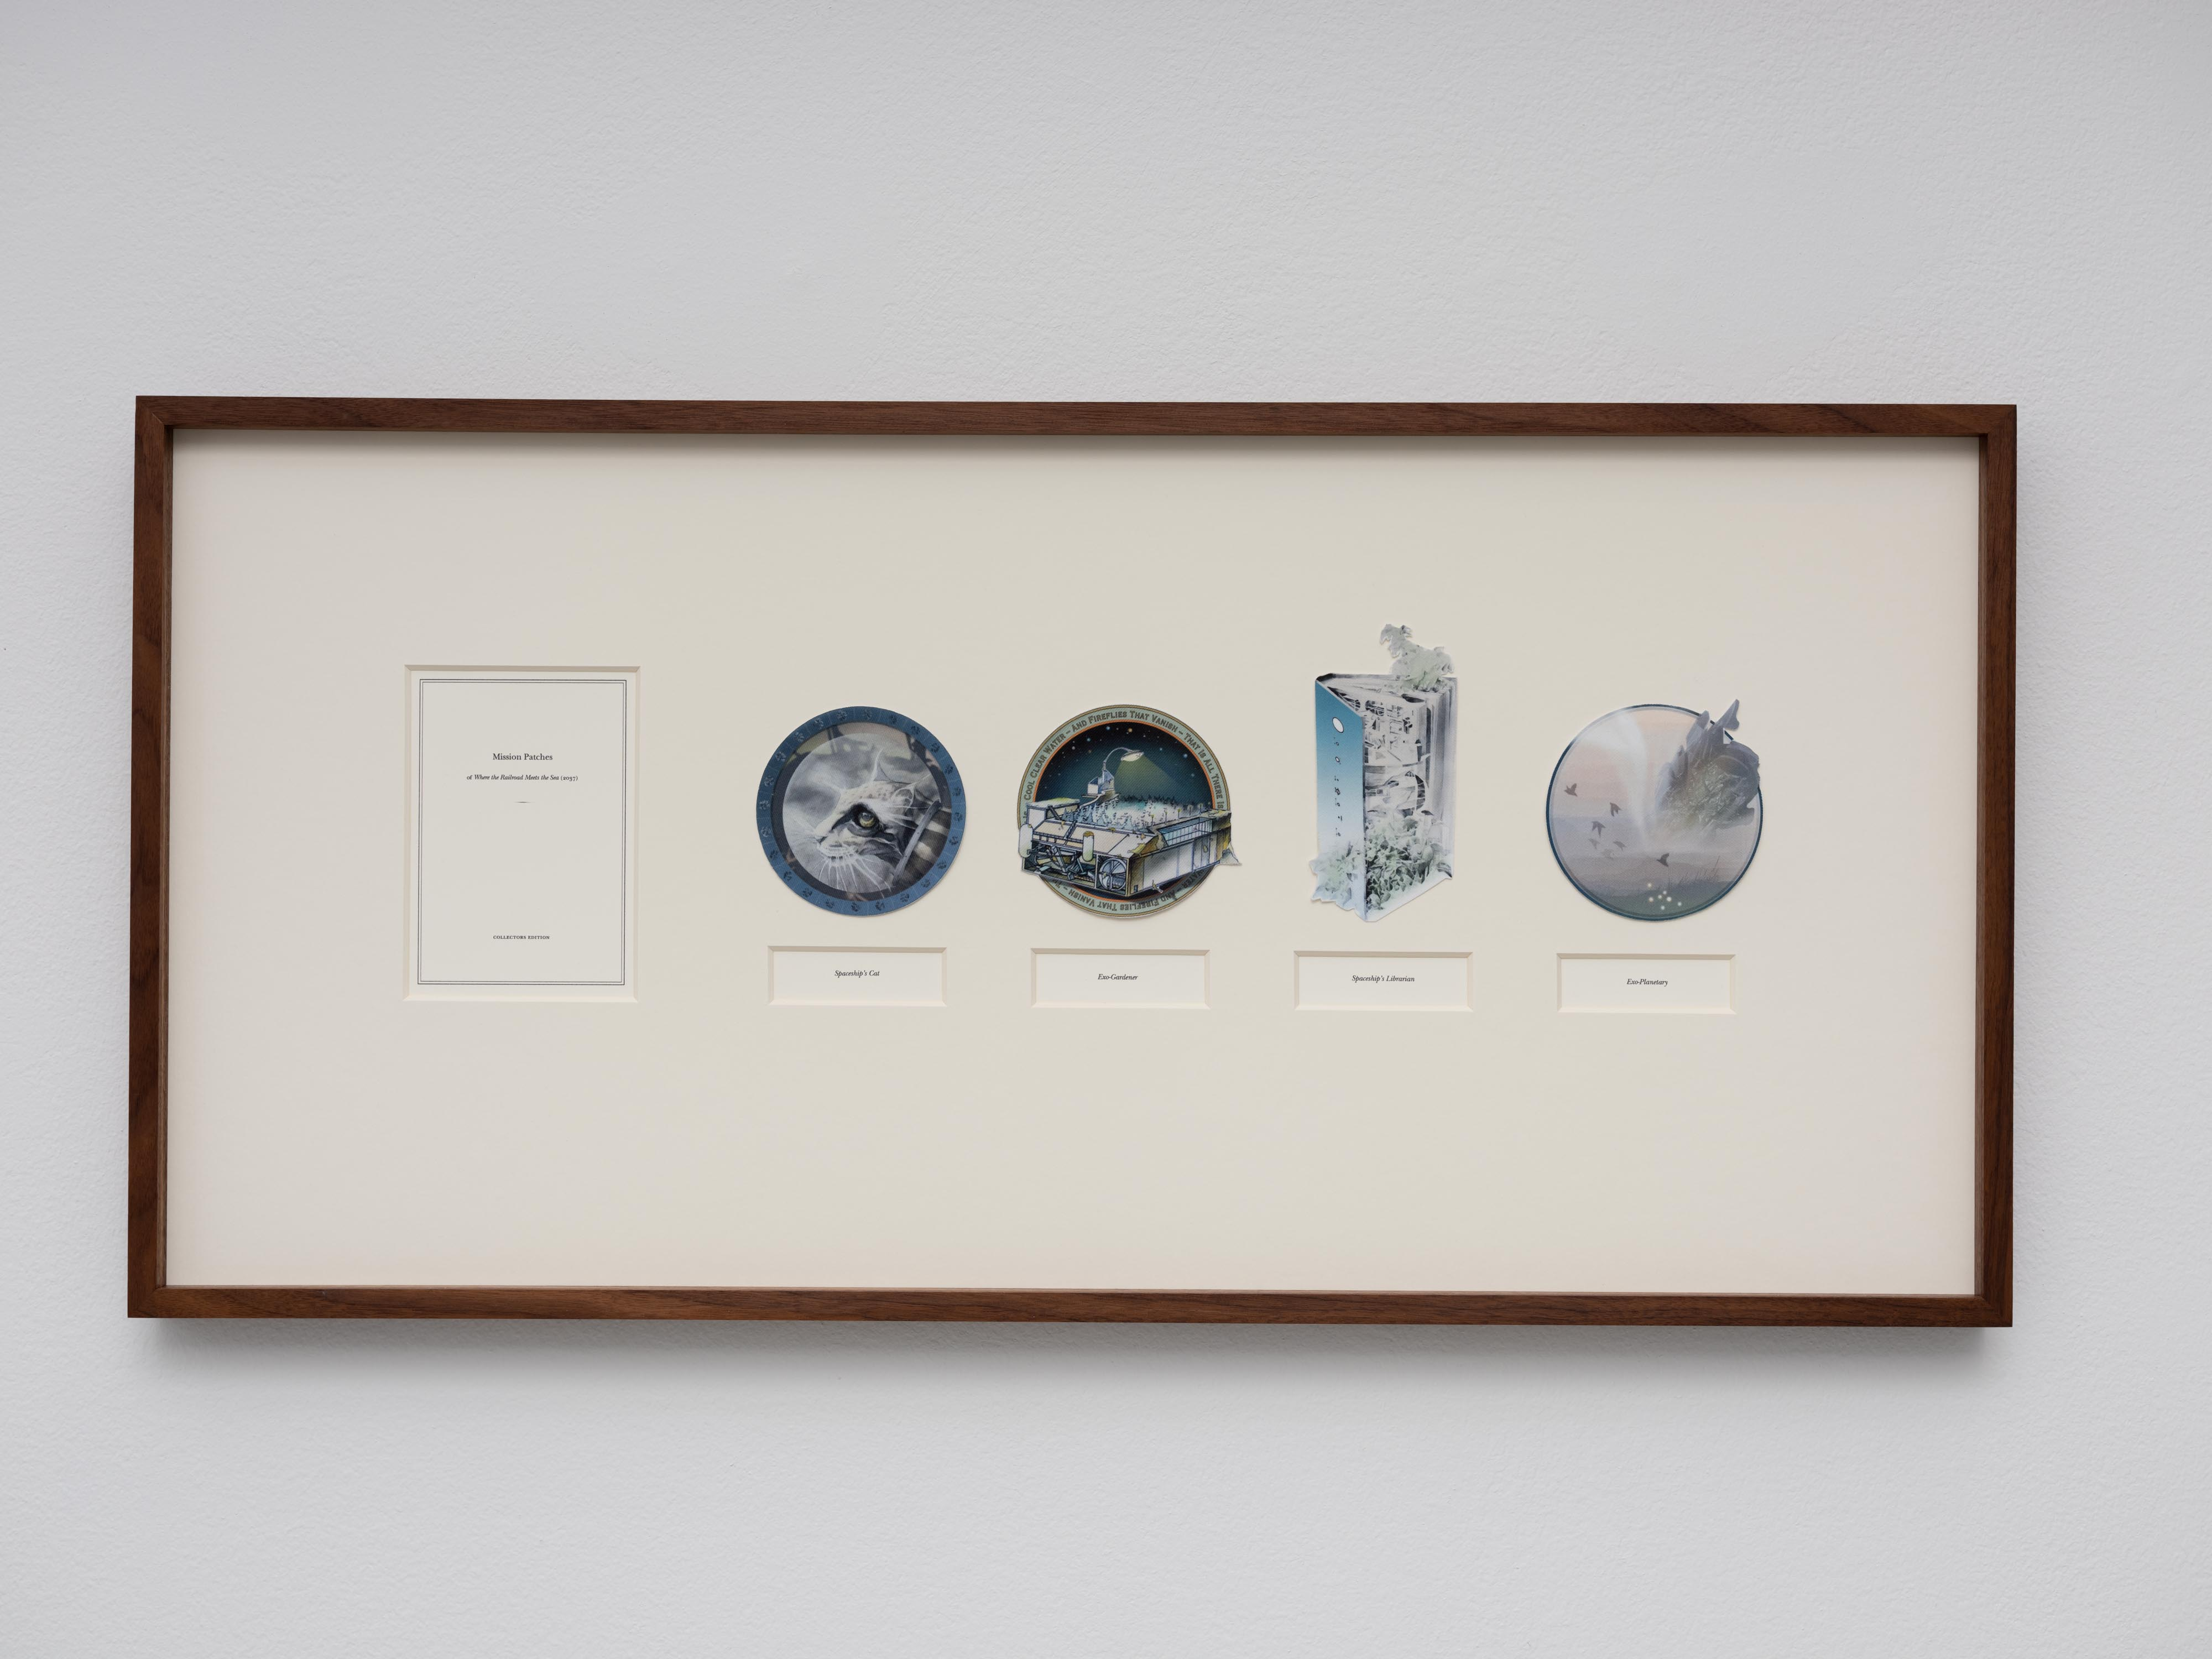 Mission Patches, 2019, pigment print on fabric and paper, museum glass, walnut frame, 40 x 82 cm, edition of 5